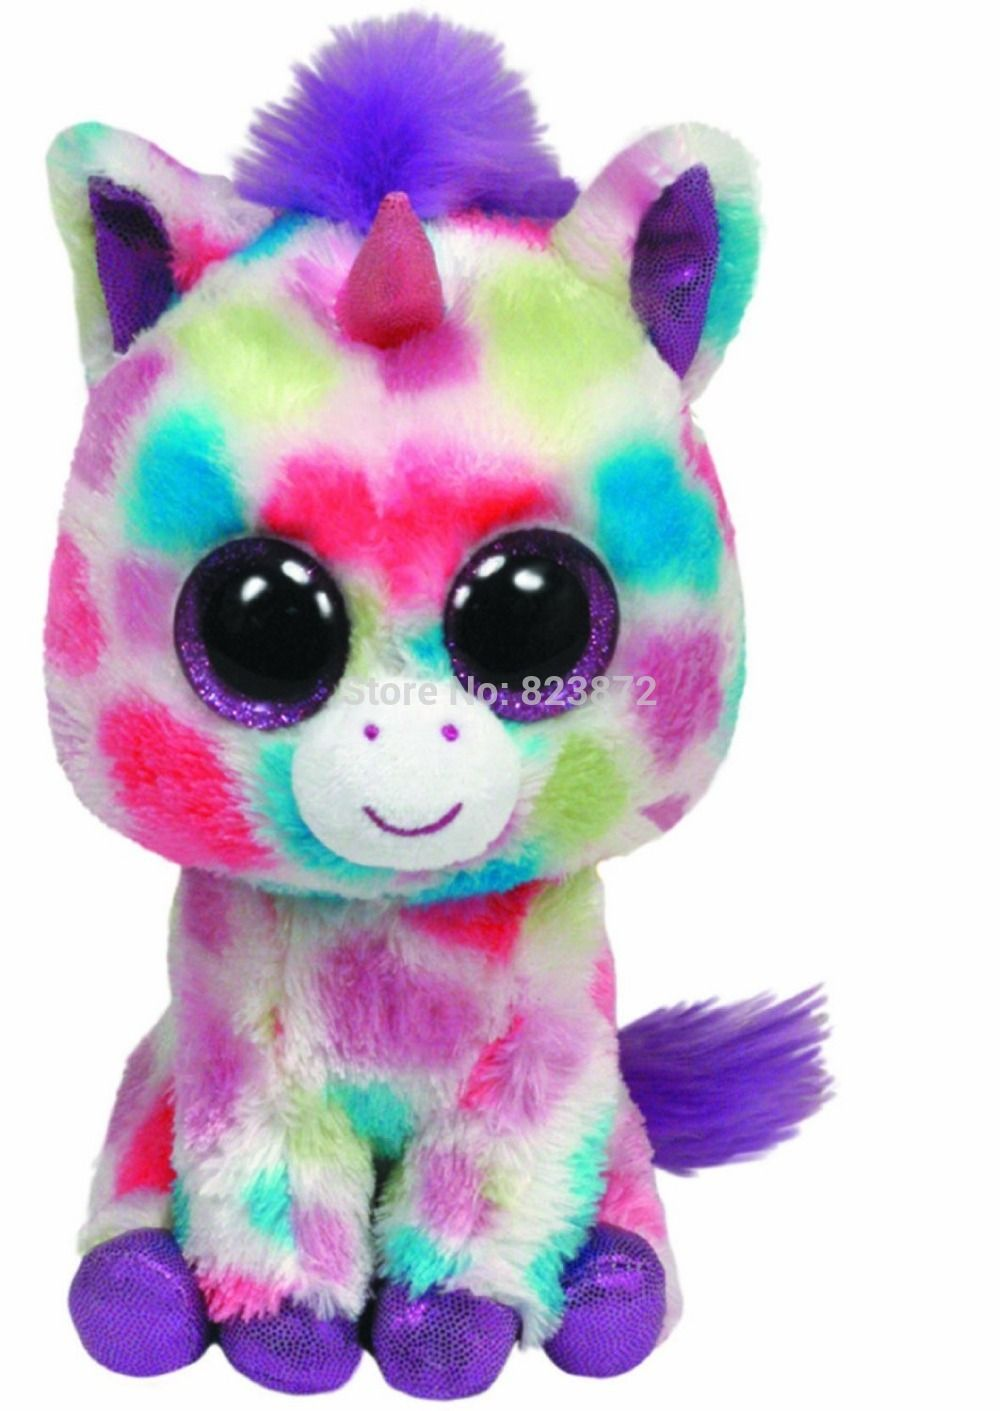 Original TY Big Eyes Beanie Boos Wishful Plush Unicorn Toys 15cm 6   Ty Big  Eyed Stuffed Animals Soft Toys for Children 39f207e52e1f